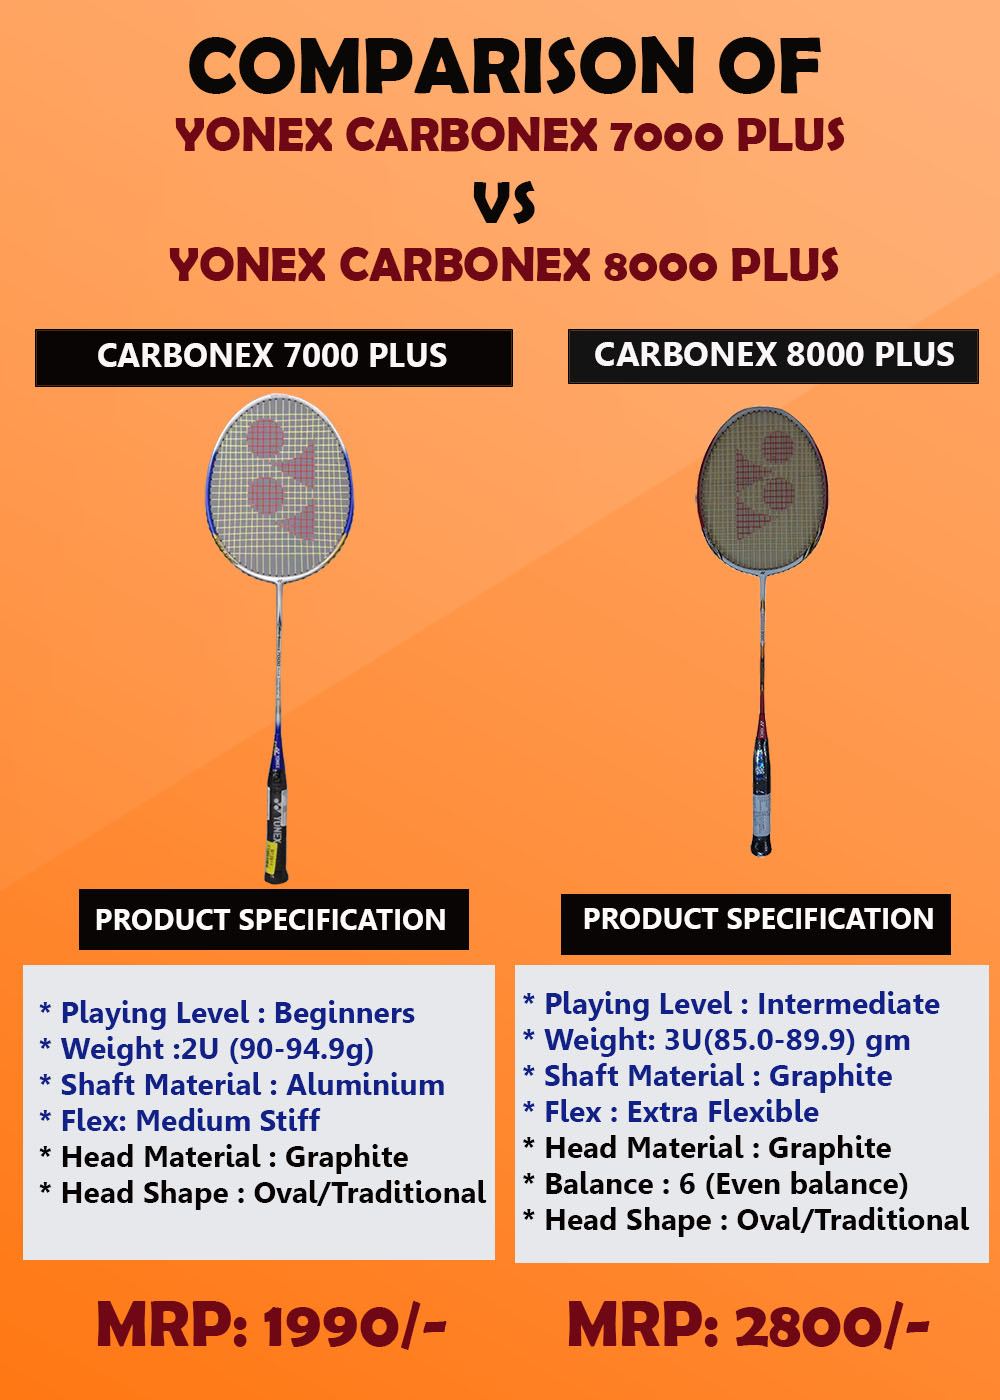 Comparison of Yonex Carbonex 7000 Plus VS Carbonex 8000 Plus_2